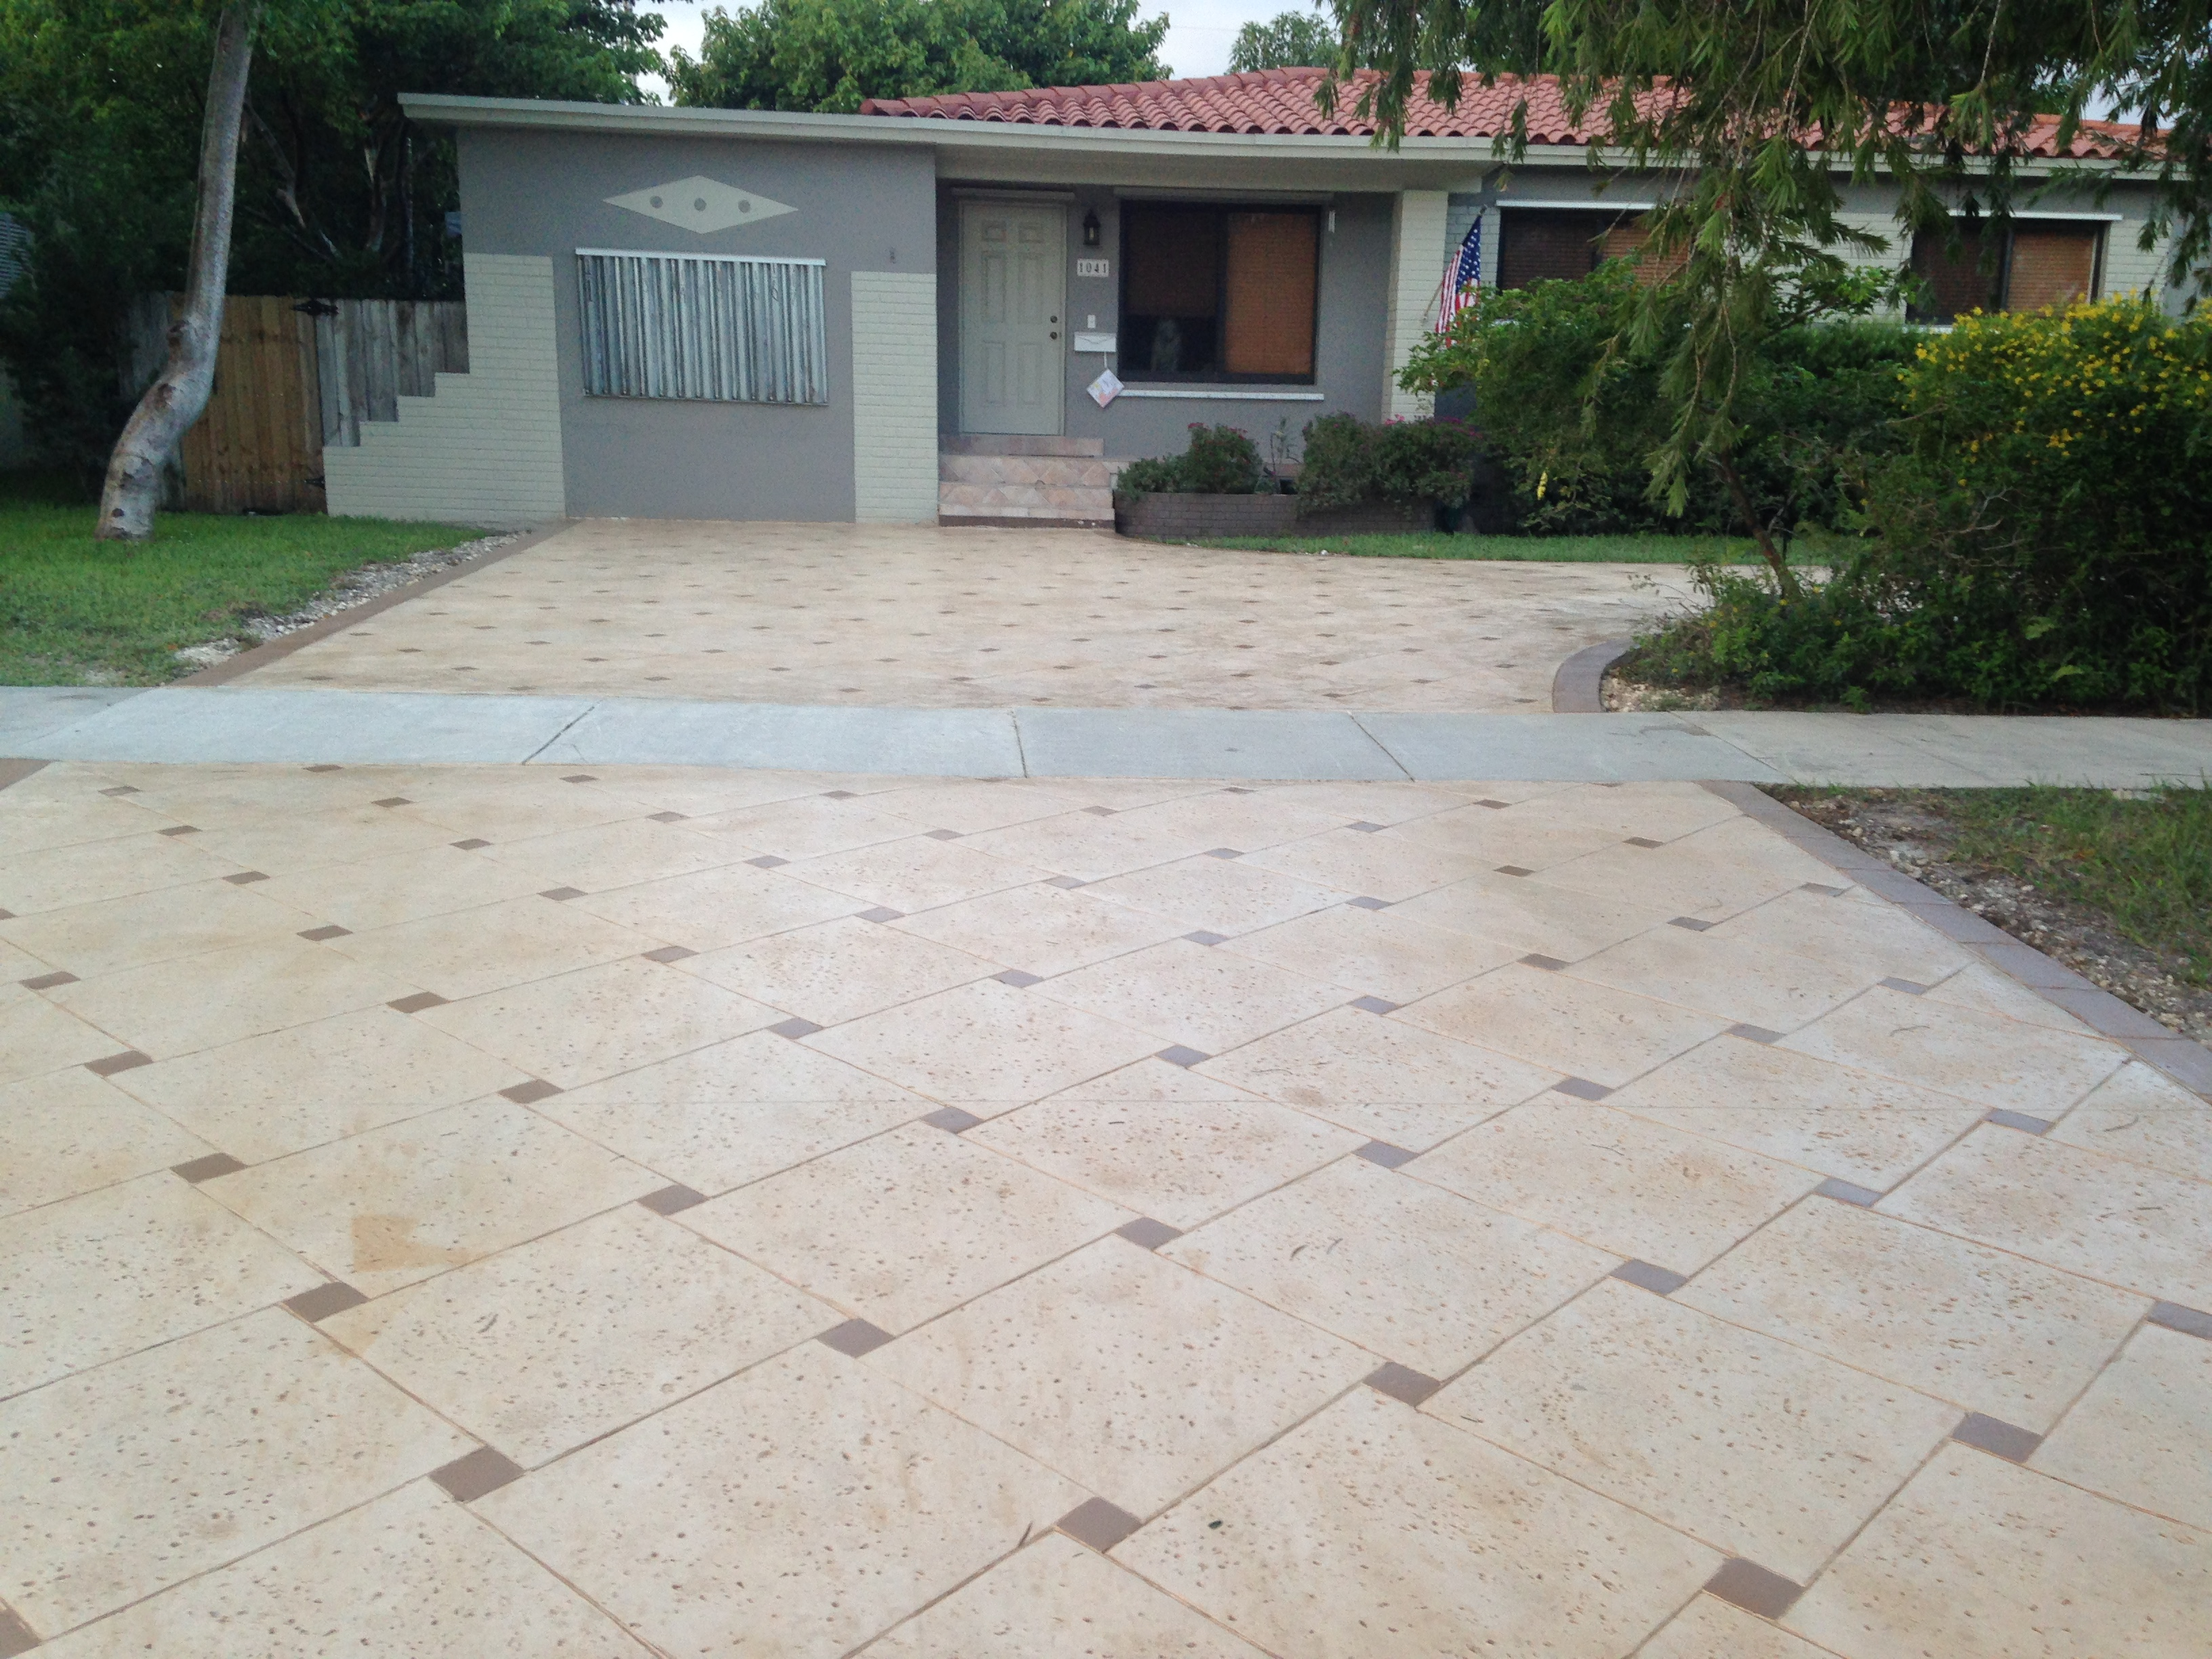 Keystone Pattern (Stamp Concrete), Color: Adobe Buff and Buff